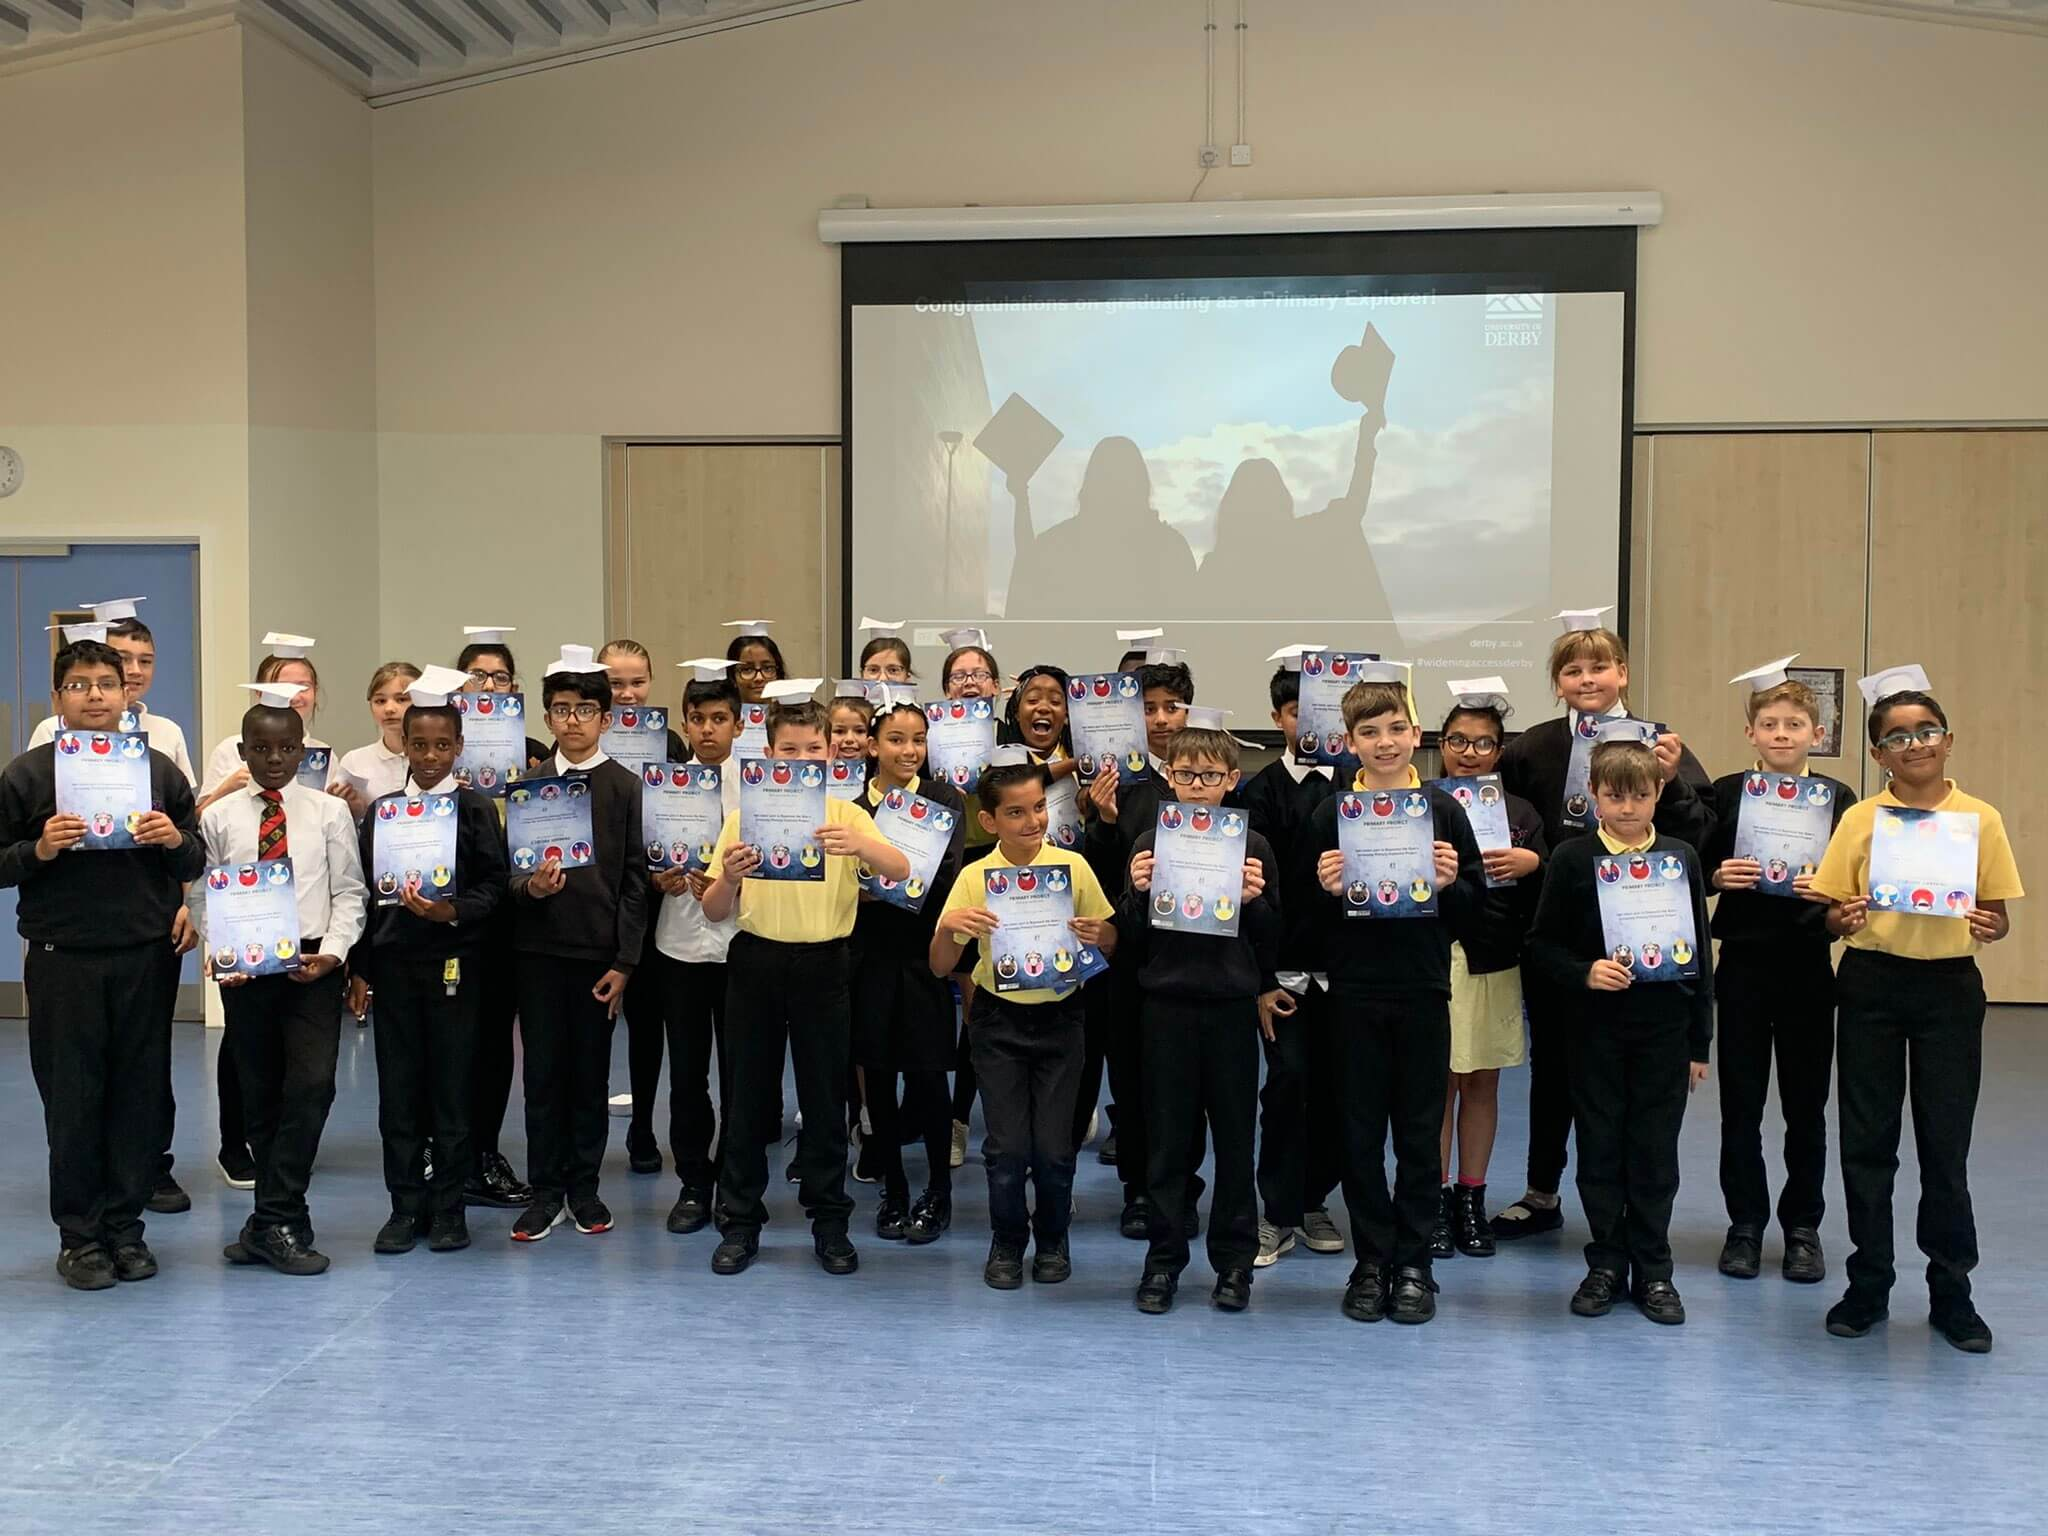 Year 6 students at Bemrose Primary holding their graduation certificates and hats.